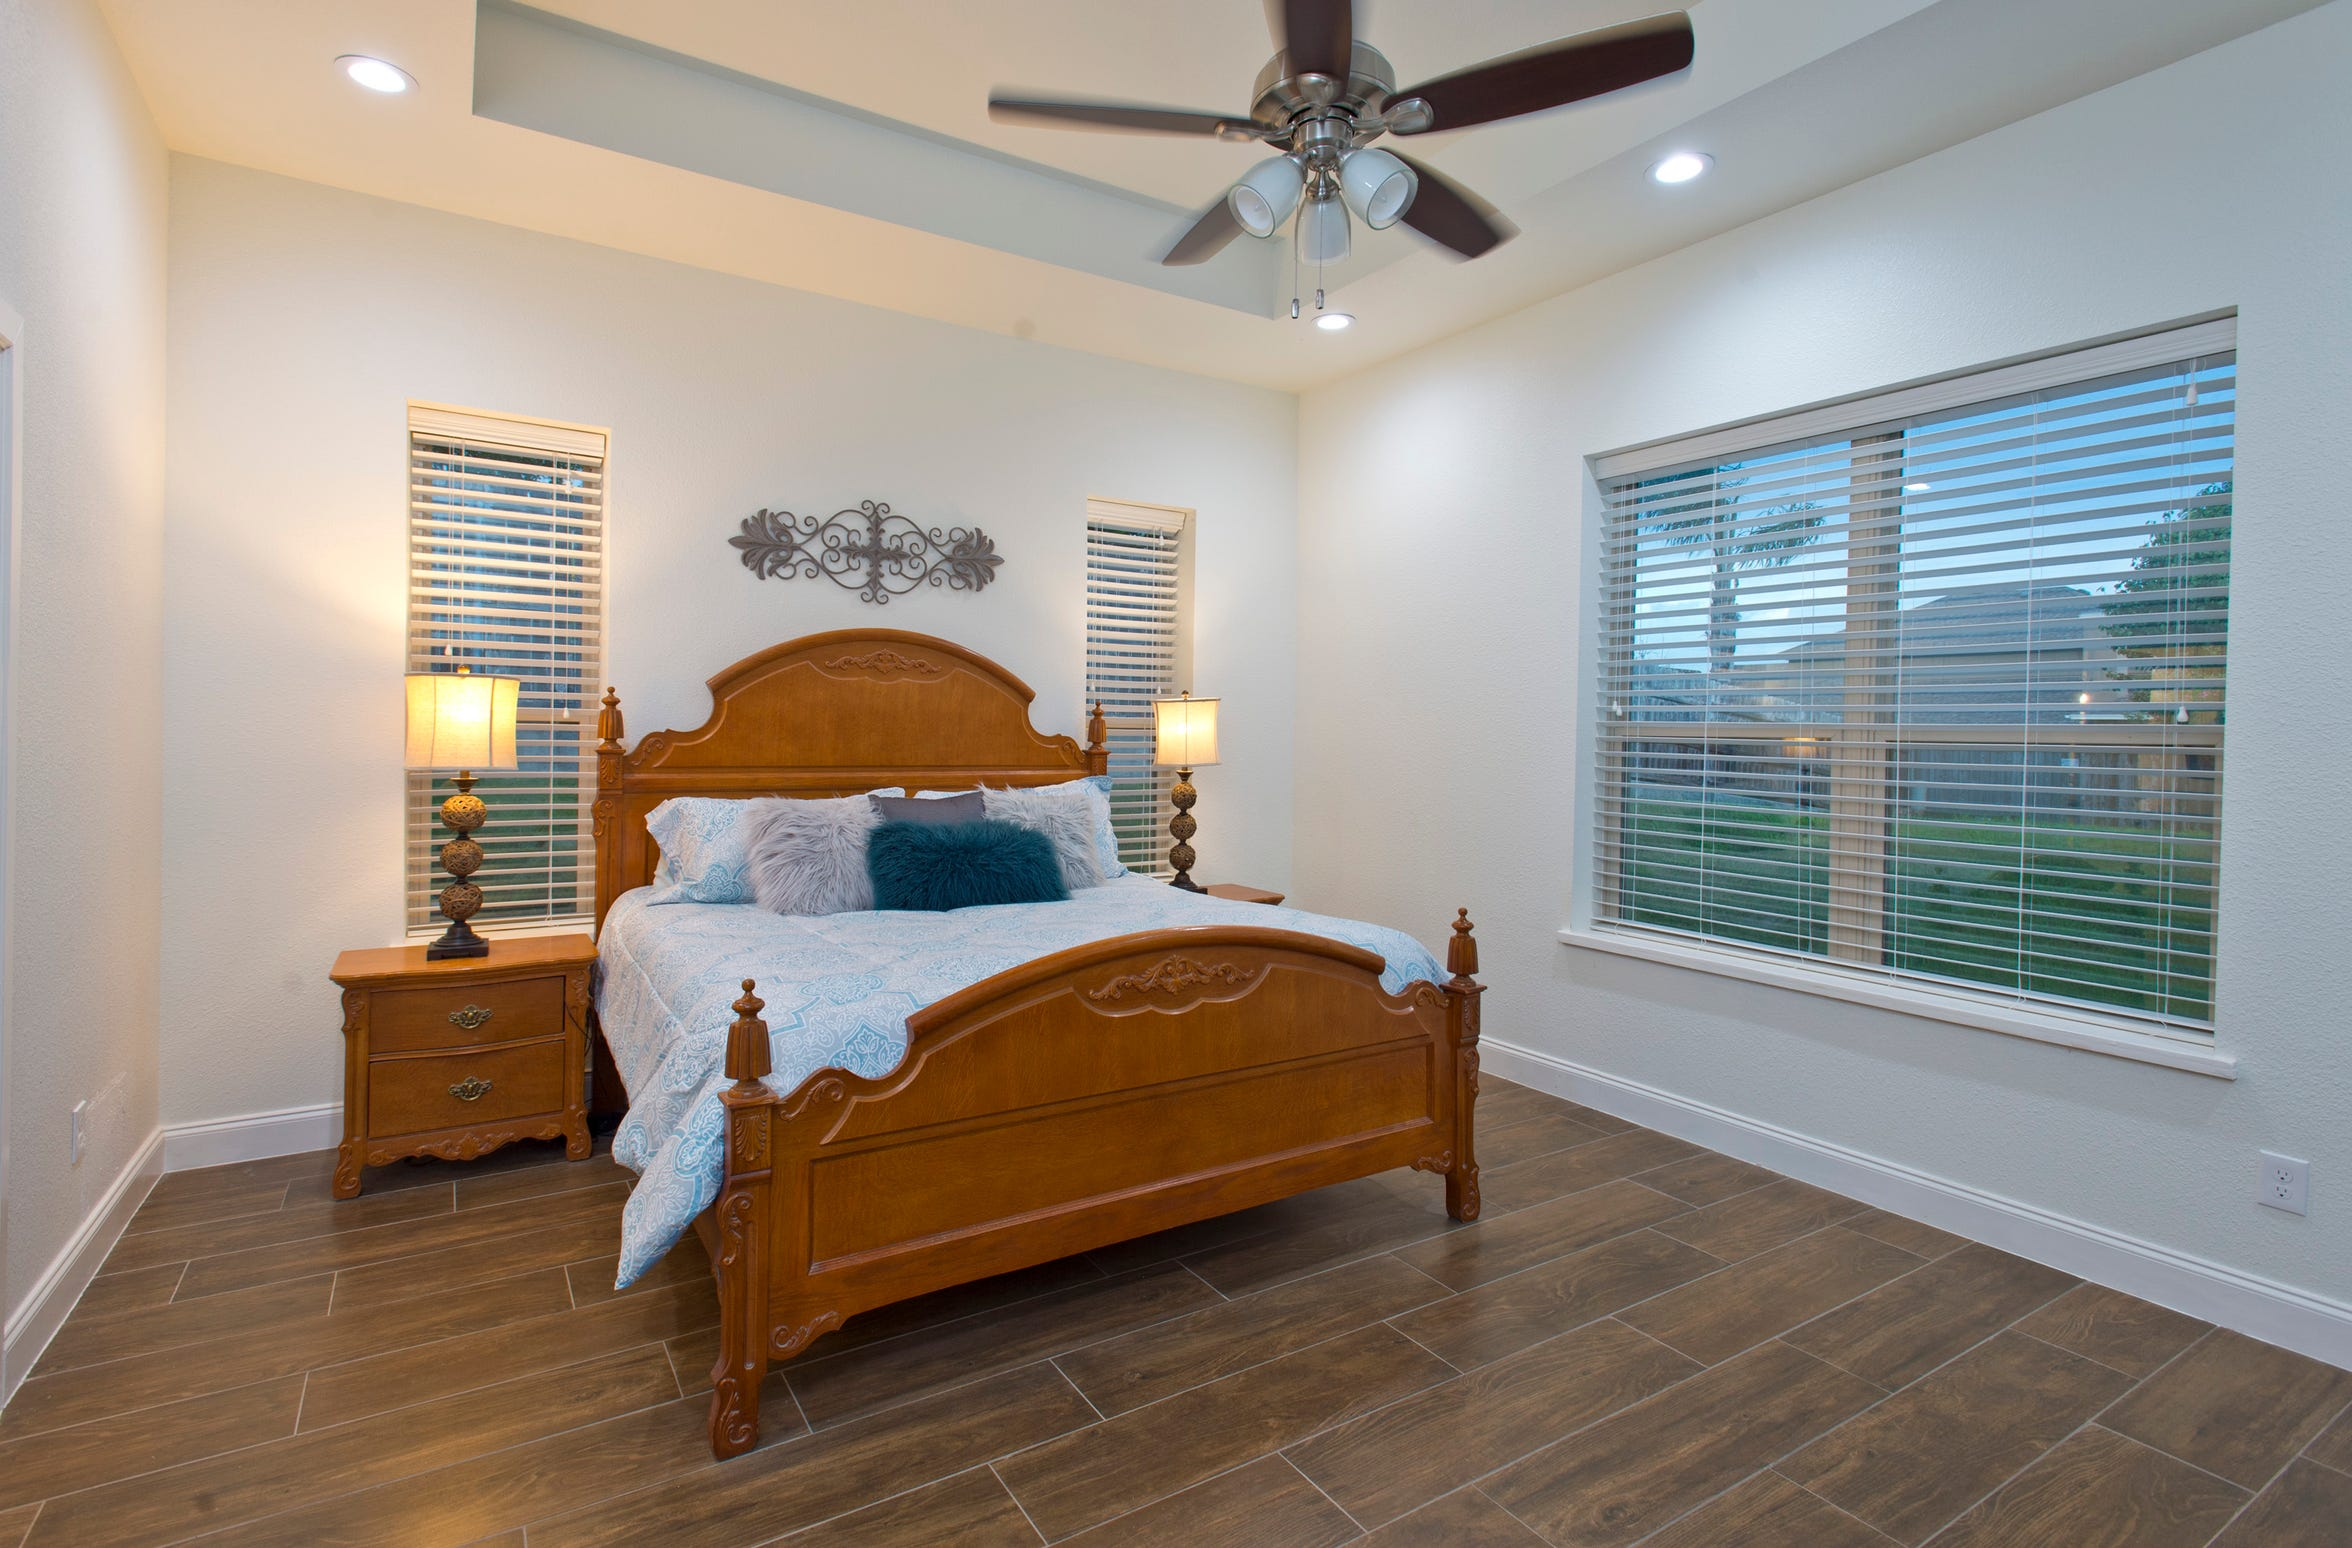 The master bedroom features a recessed ceiling, wood look tile folding and lots of window area overlooking the yard